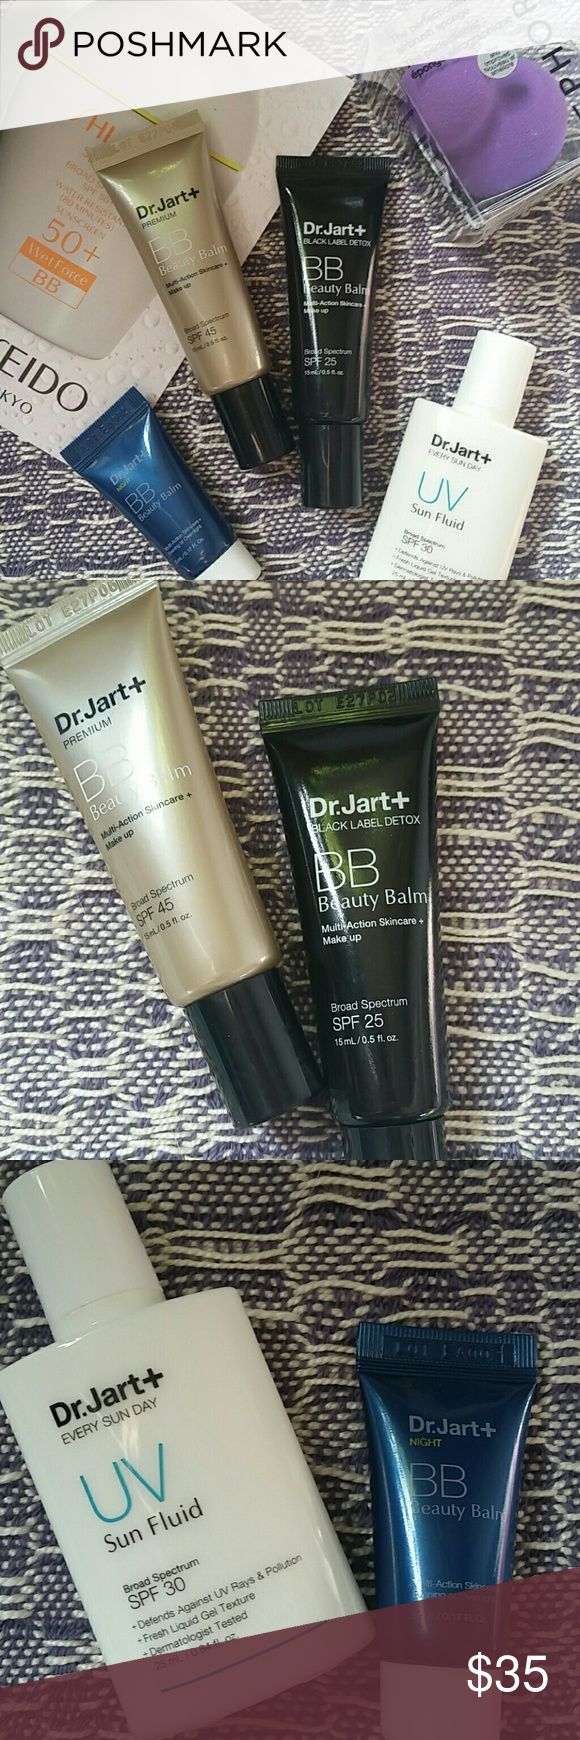 Dr. Jart+ skincare bundle Bundle of 5 products plus a sunscreen sample. All products are new, never swatched*  Dr. Jart+ Premium BB Beauty Balm, spf 45, 15 mL Dr. Jart+ Black Label BB Beauty Balm, spf 25, 15 mL Dr. Jart+ UV Sun Fluid, spf 30, 25 mL Dr. Jart+ Night BB Beauty Balm, 5 mL Sephora Perfectionist blending sponge  Shiseido sunscreen BB sample   *the Dr. Jart+ products are NOT sealed, and product leakage is possible during shipment. Be assured, these are new, unused products* Dr…